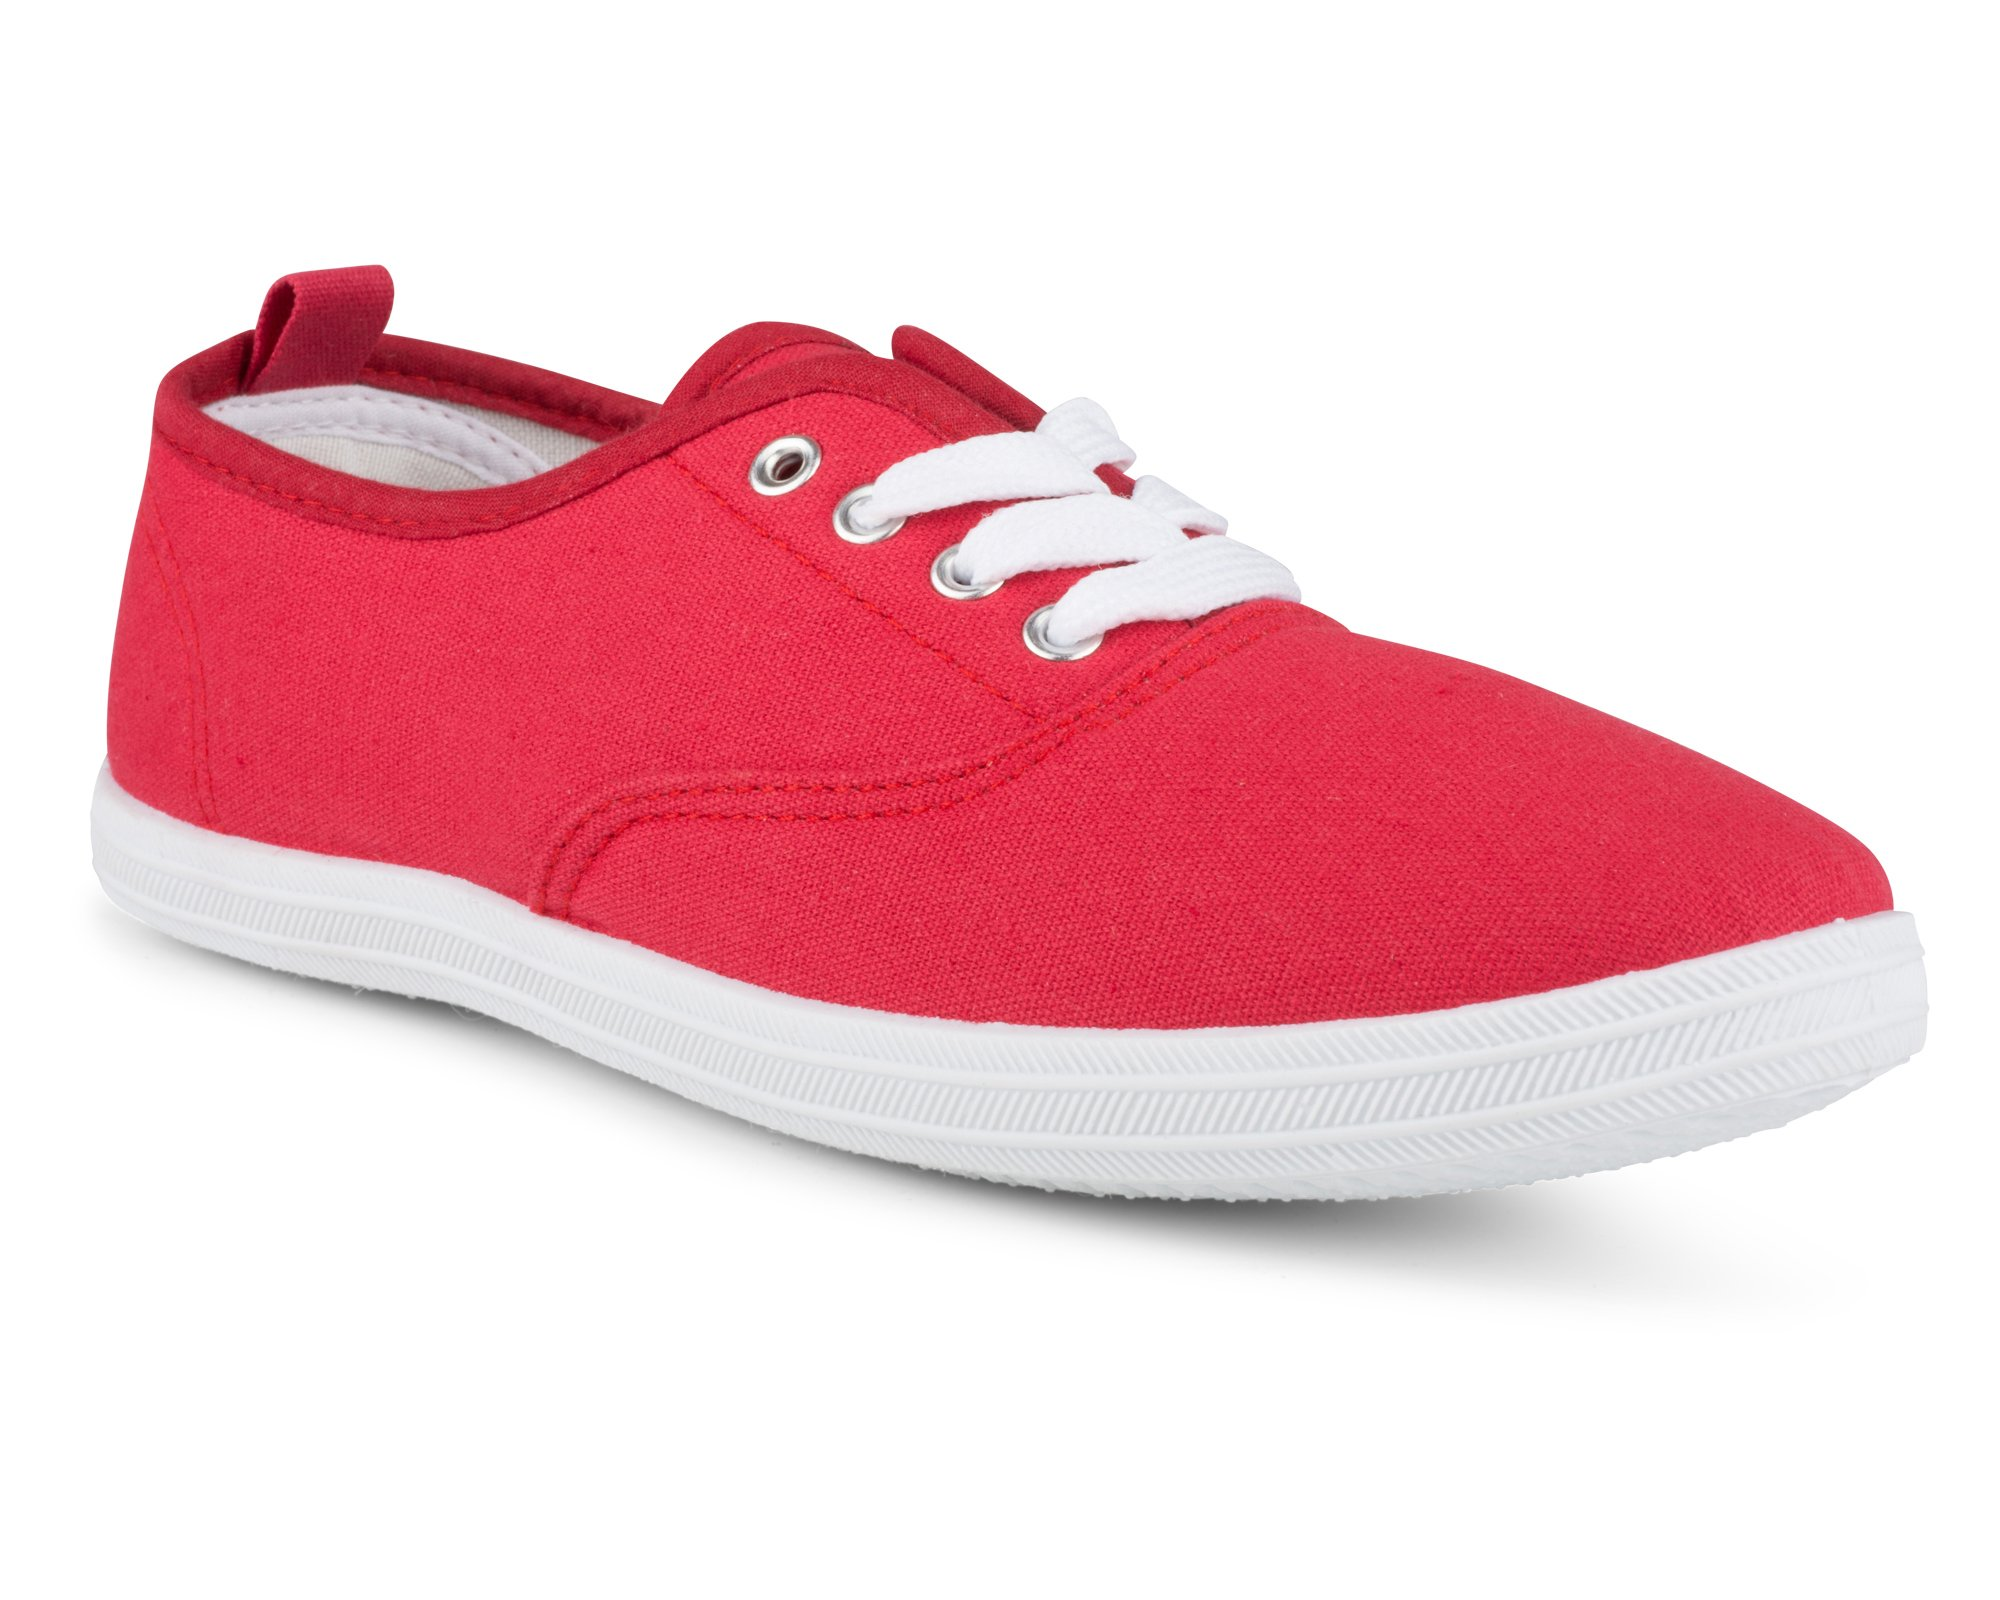 Twisted Women's Tennis Basic Athletic Lace up Sneaker - RED, Size 7